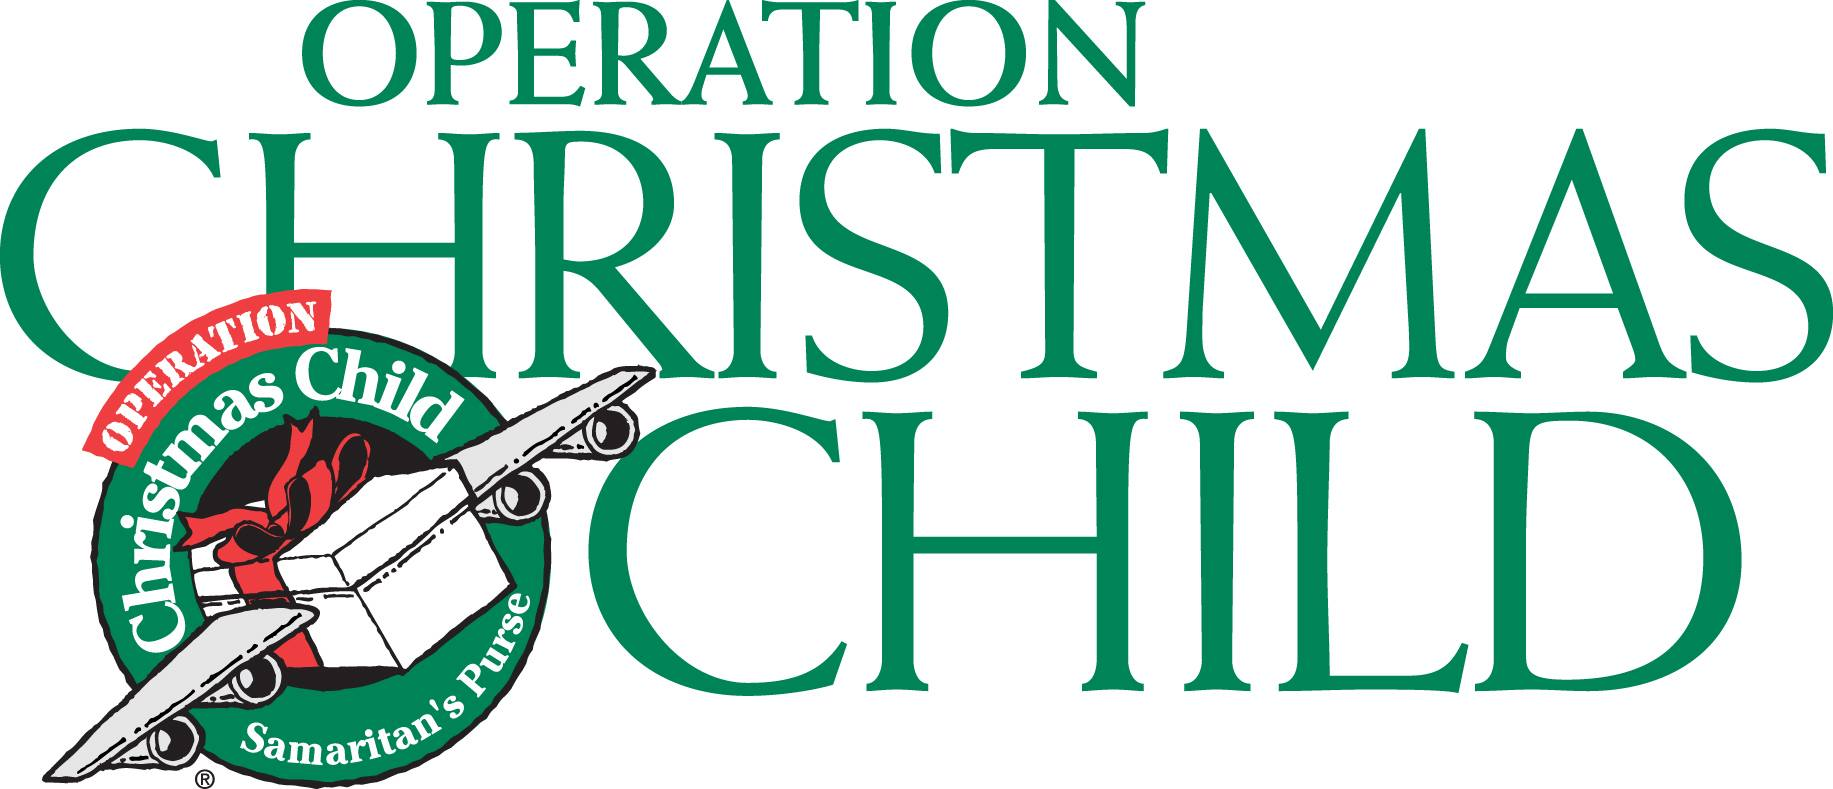 OPERATION CHRISTMAS CHILD | North Bramalea Presbyterian Church